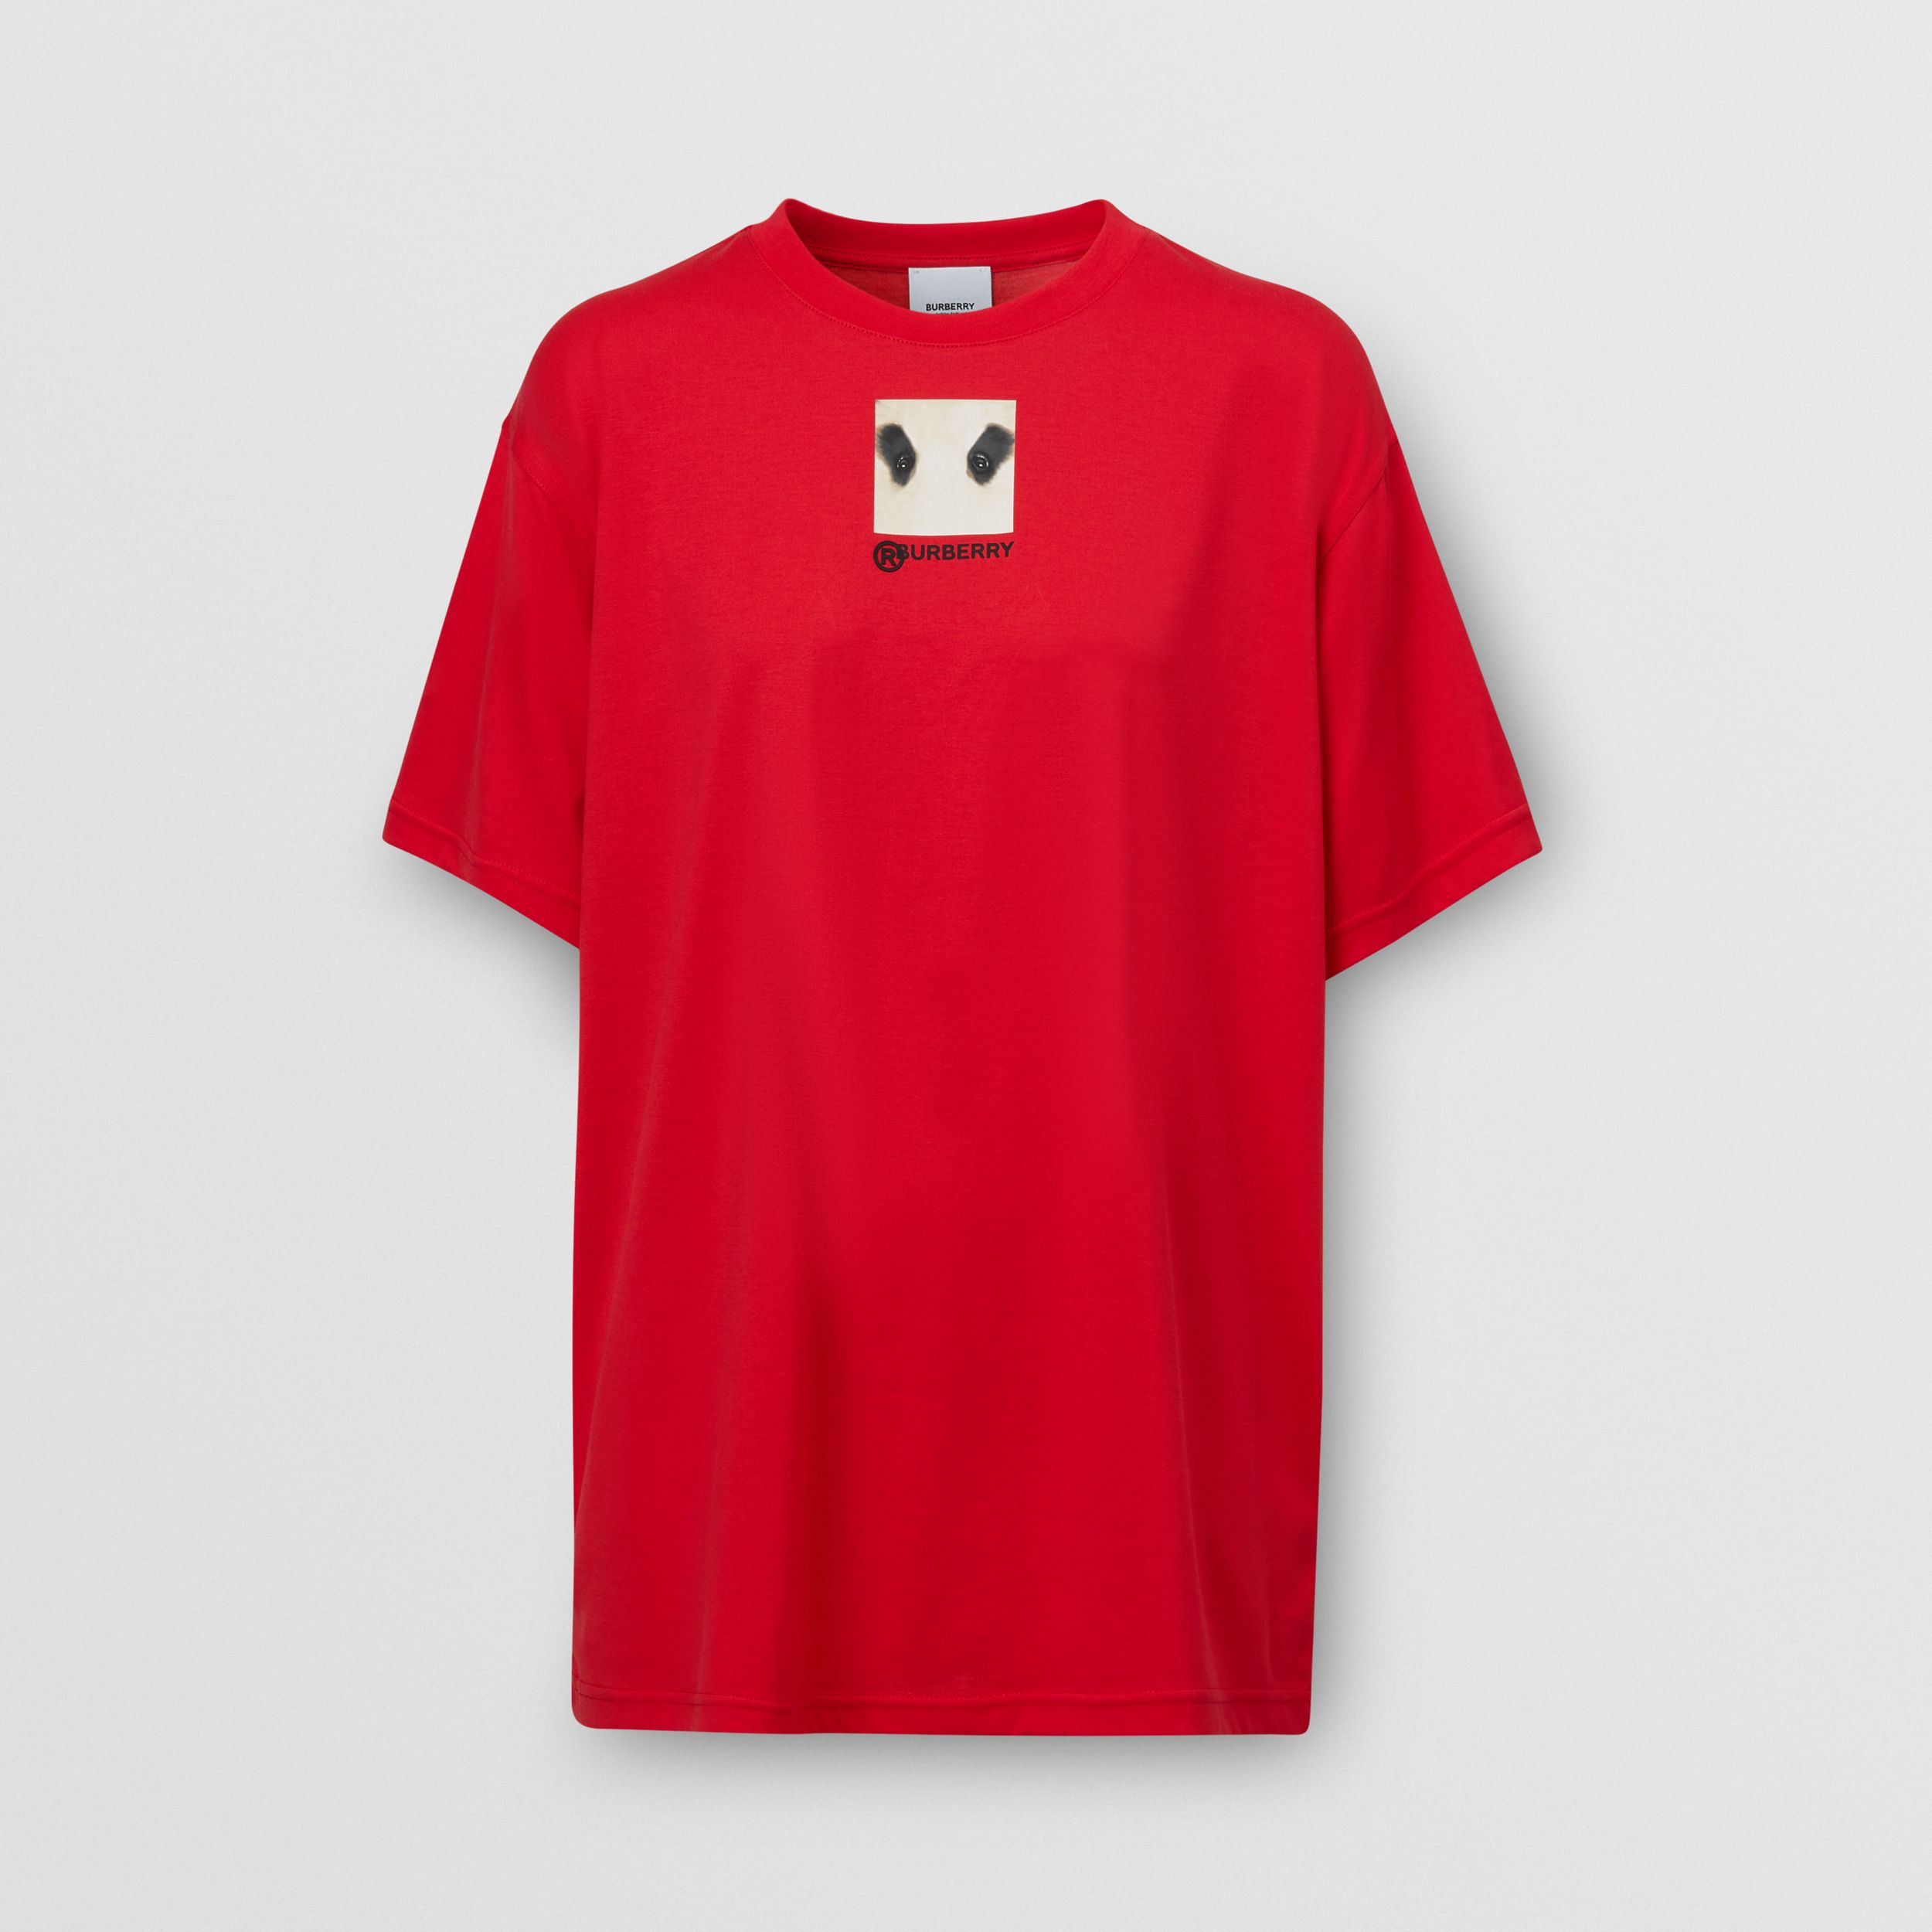 Montage Print Cotton Oversized T-shirt in Bright Red - Women | Burberry - 4